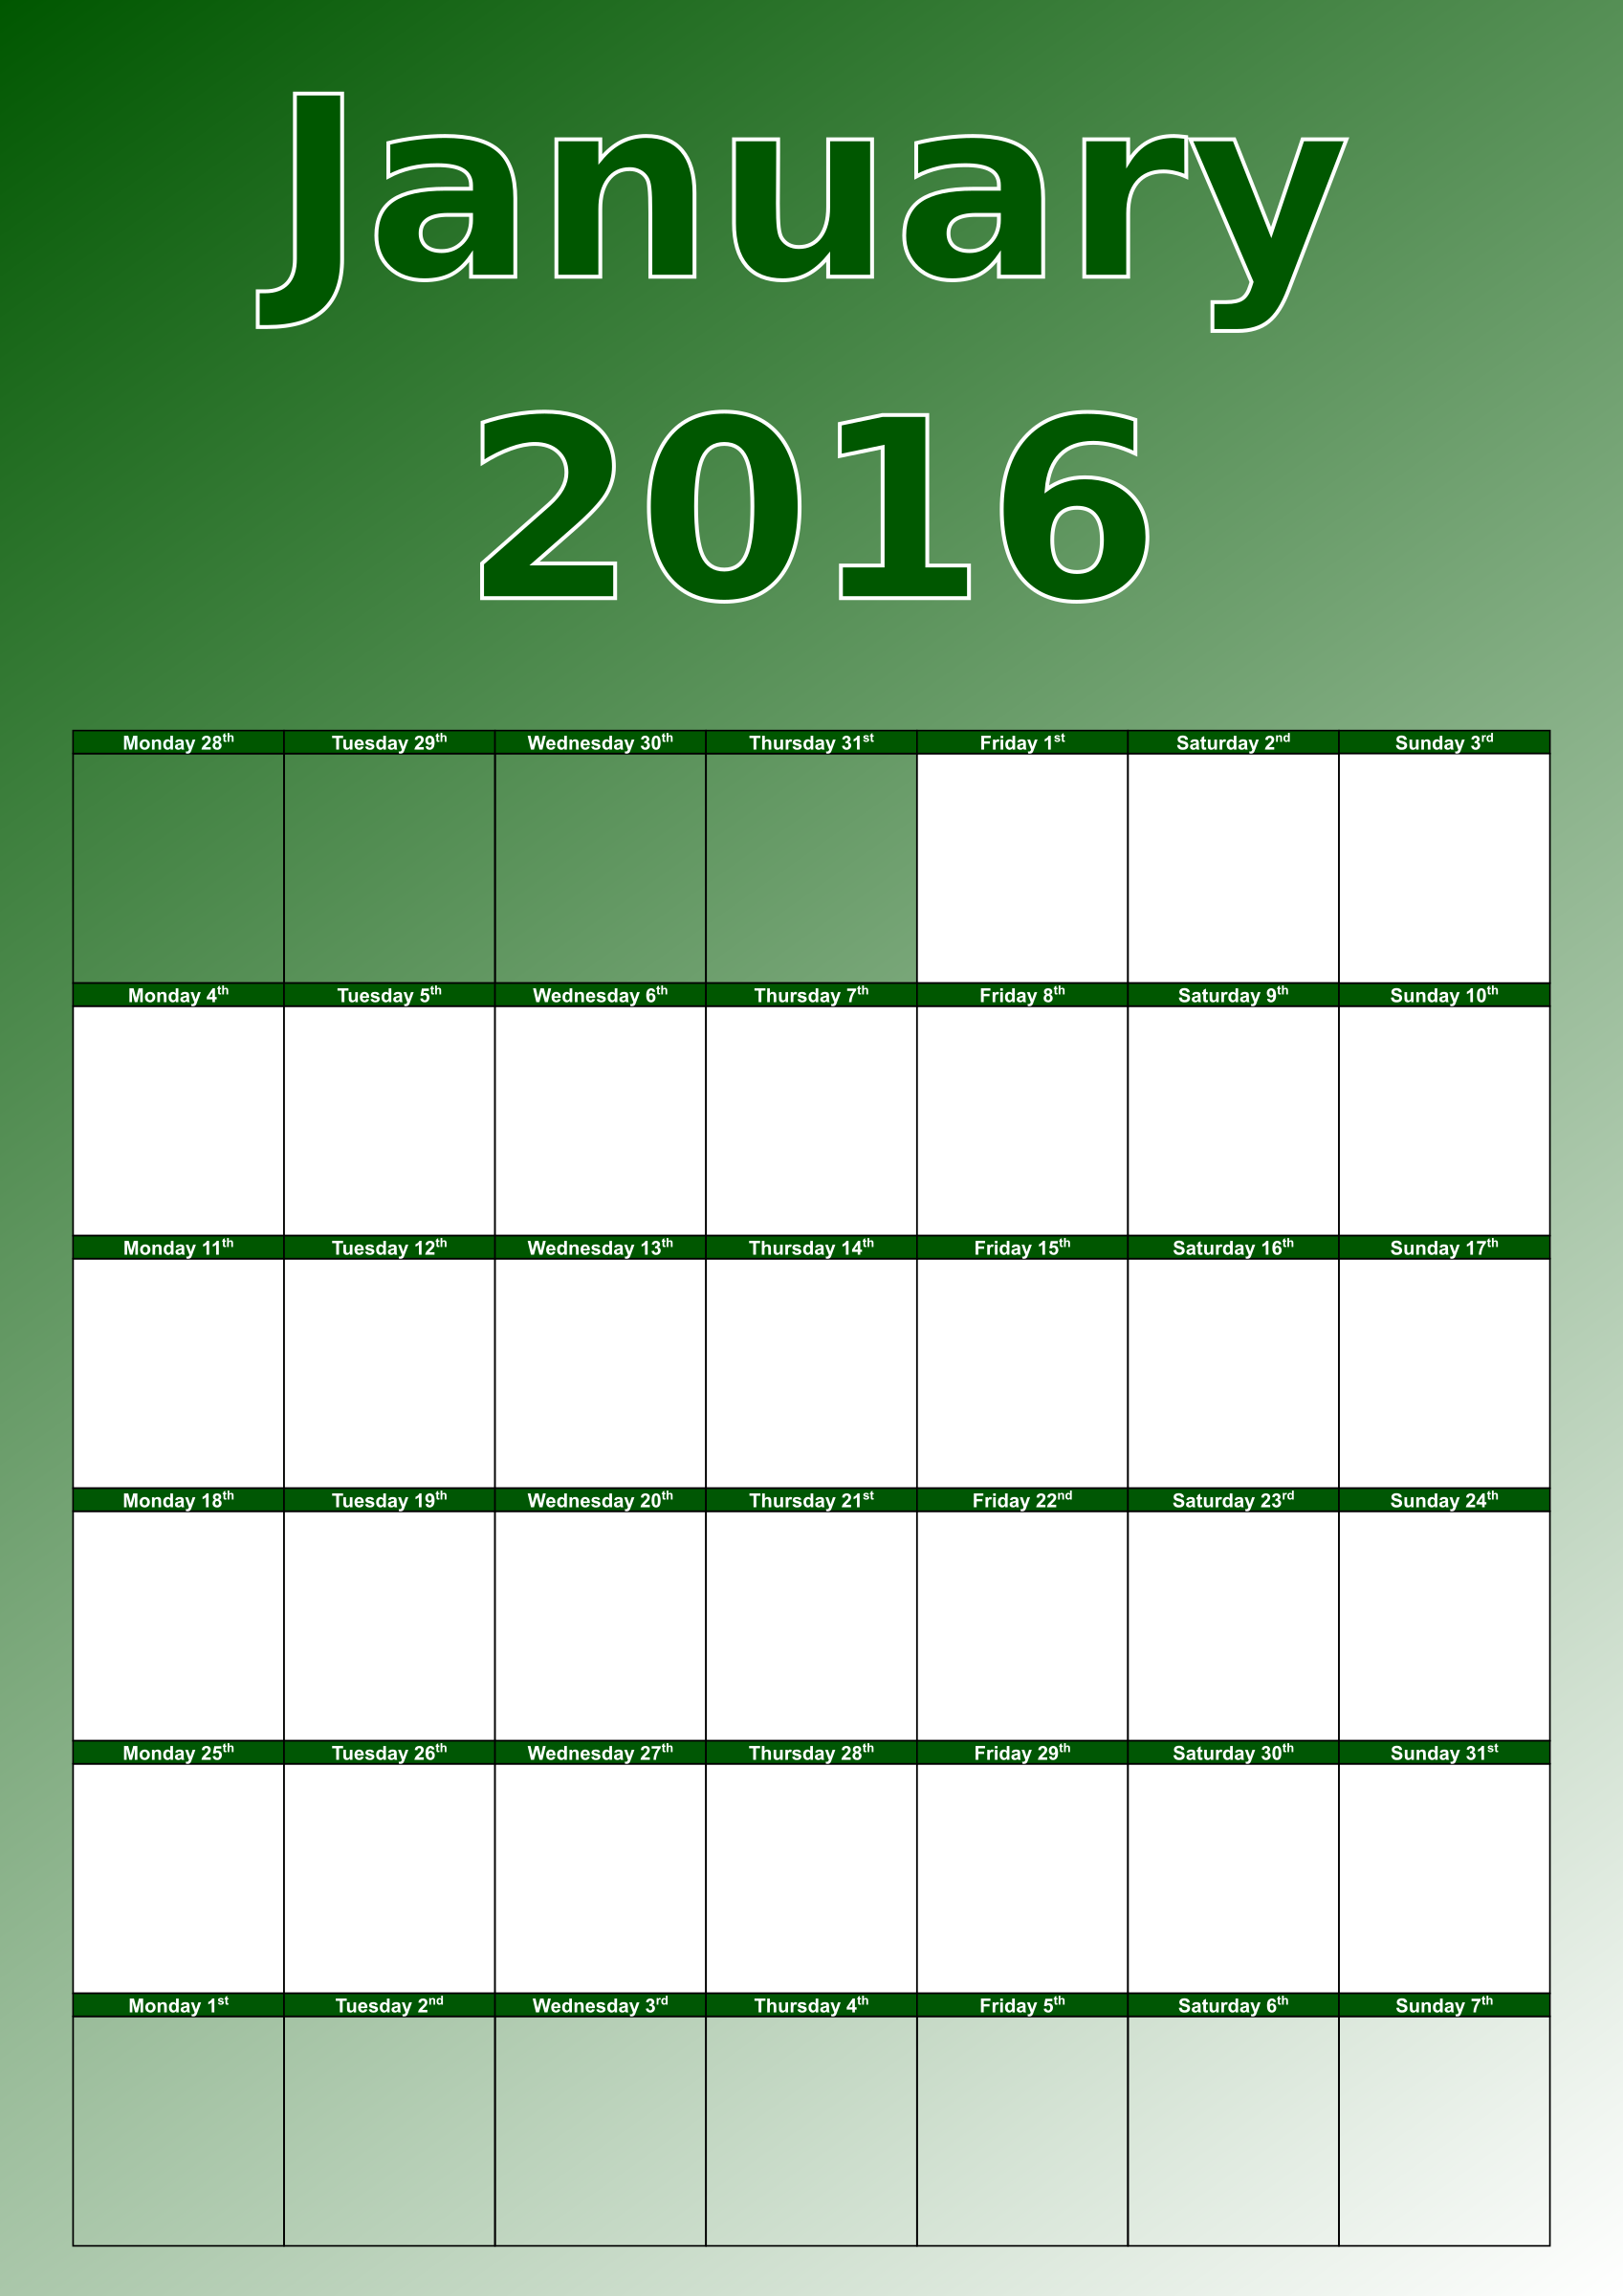 January calendar 2016 by Firkin